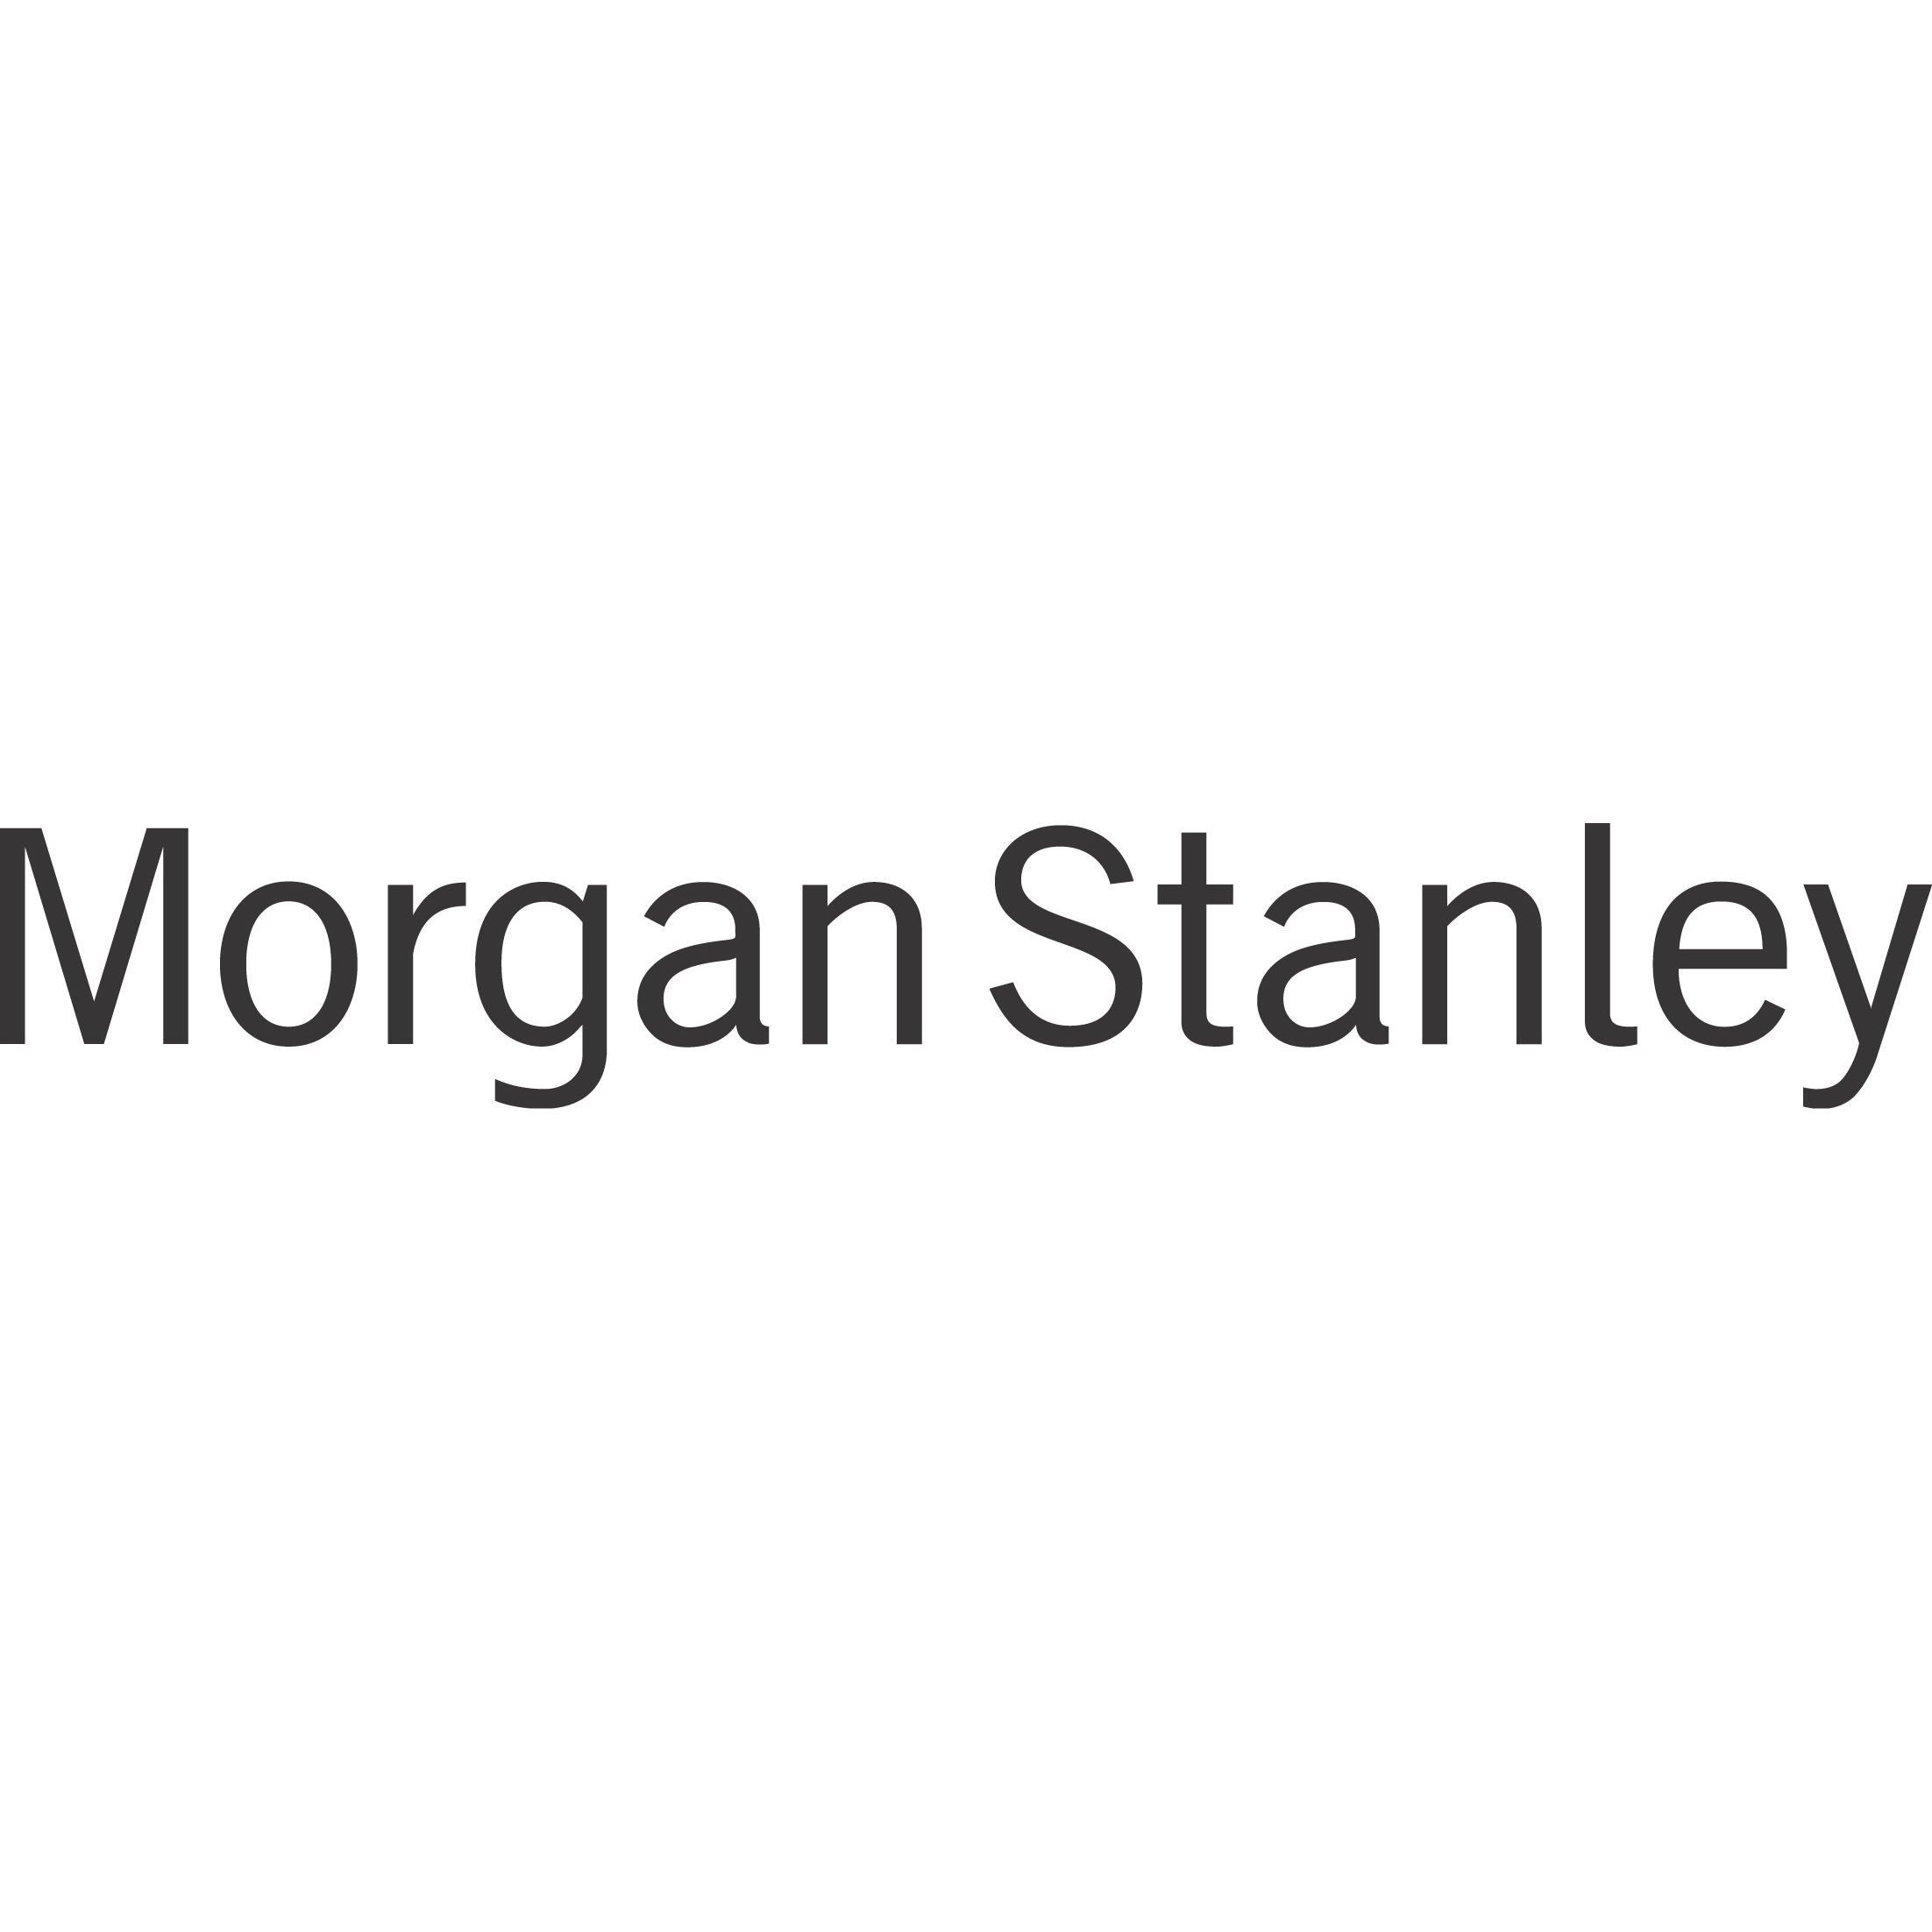 The Berger Group - Morgan Stanley